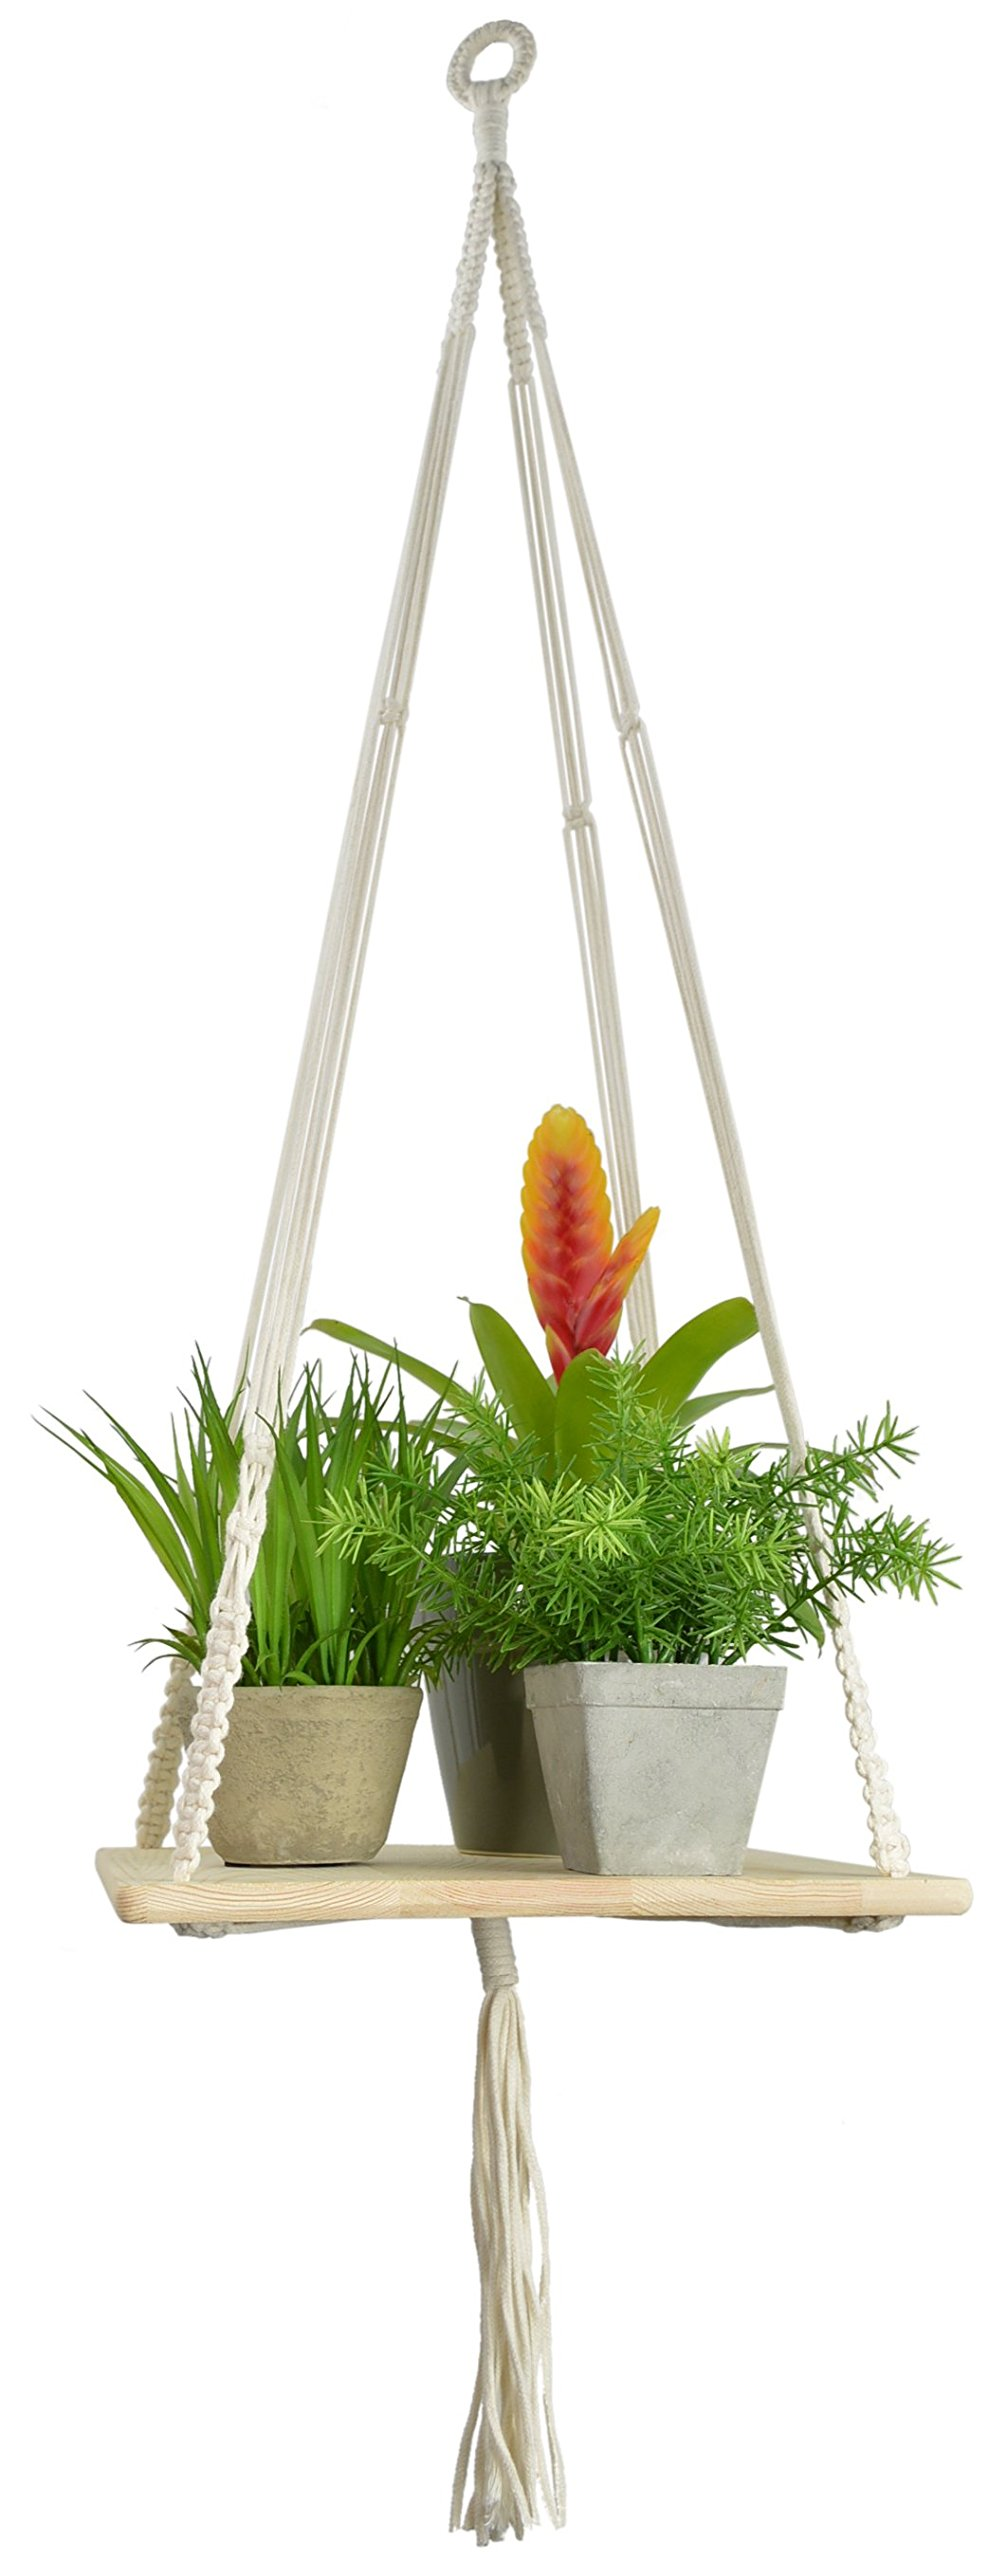 Macrame Hanging Planter with Shelf - Plant Hanger - Macrame Display Wall Hanging Shelf Swing Rope Floating Shelves Home Decor - 43 Inches (Square), By My Urban Crafts